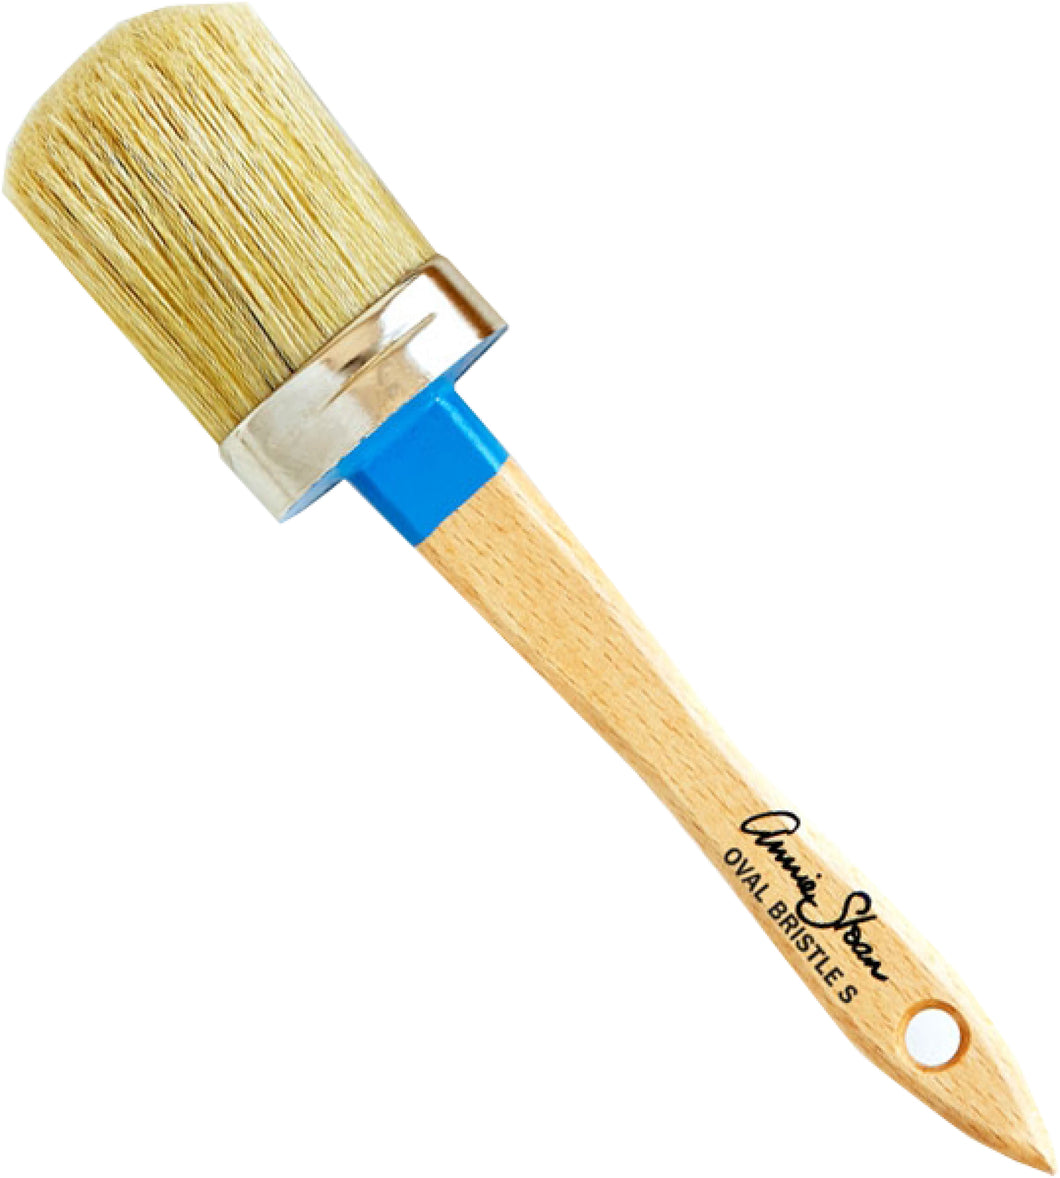 Brush, No.8